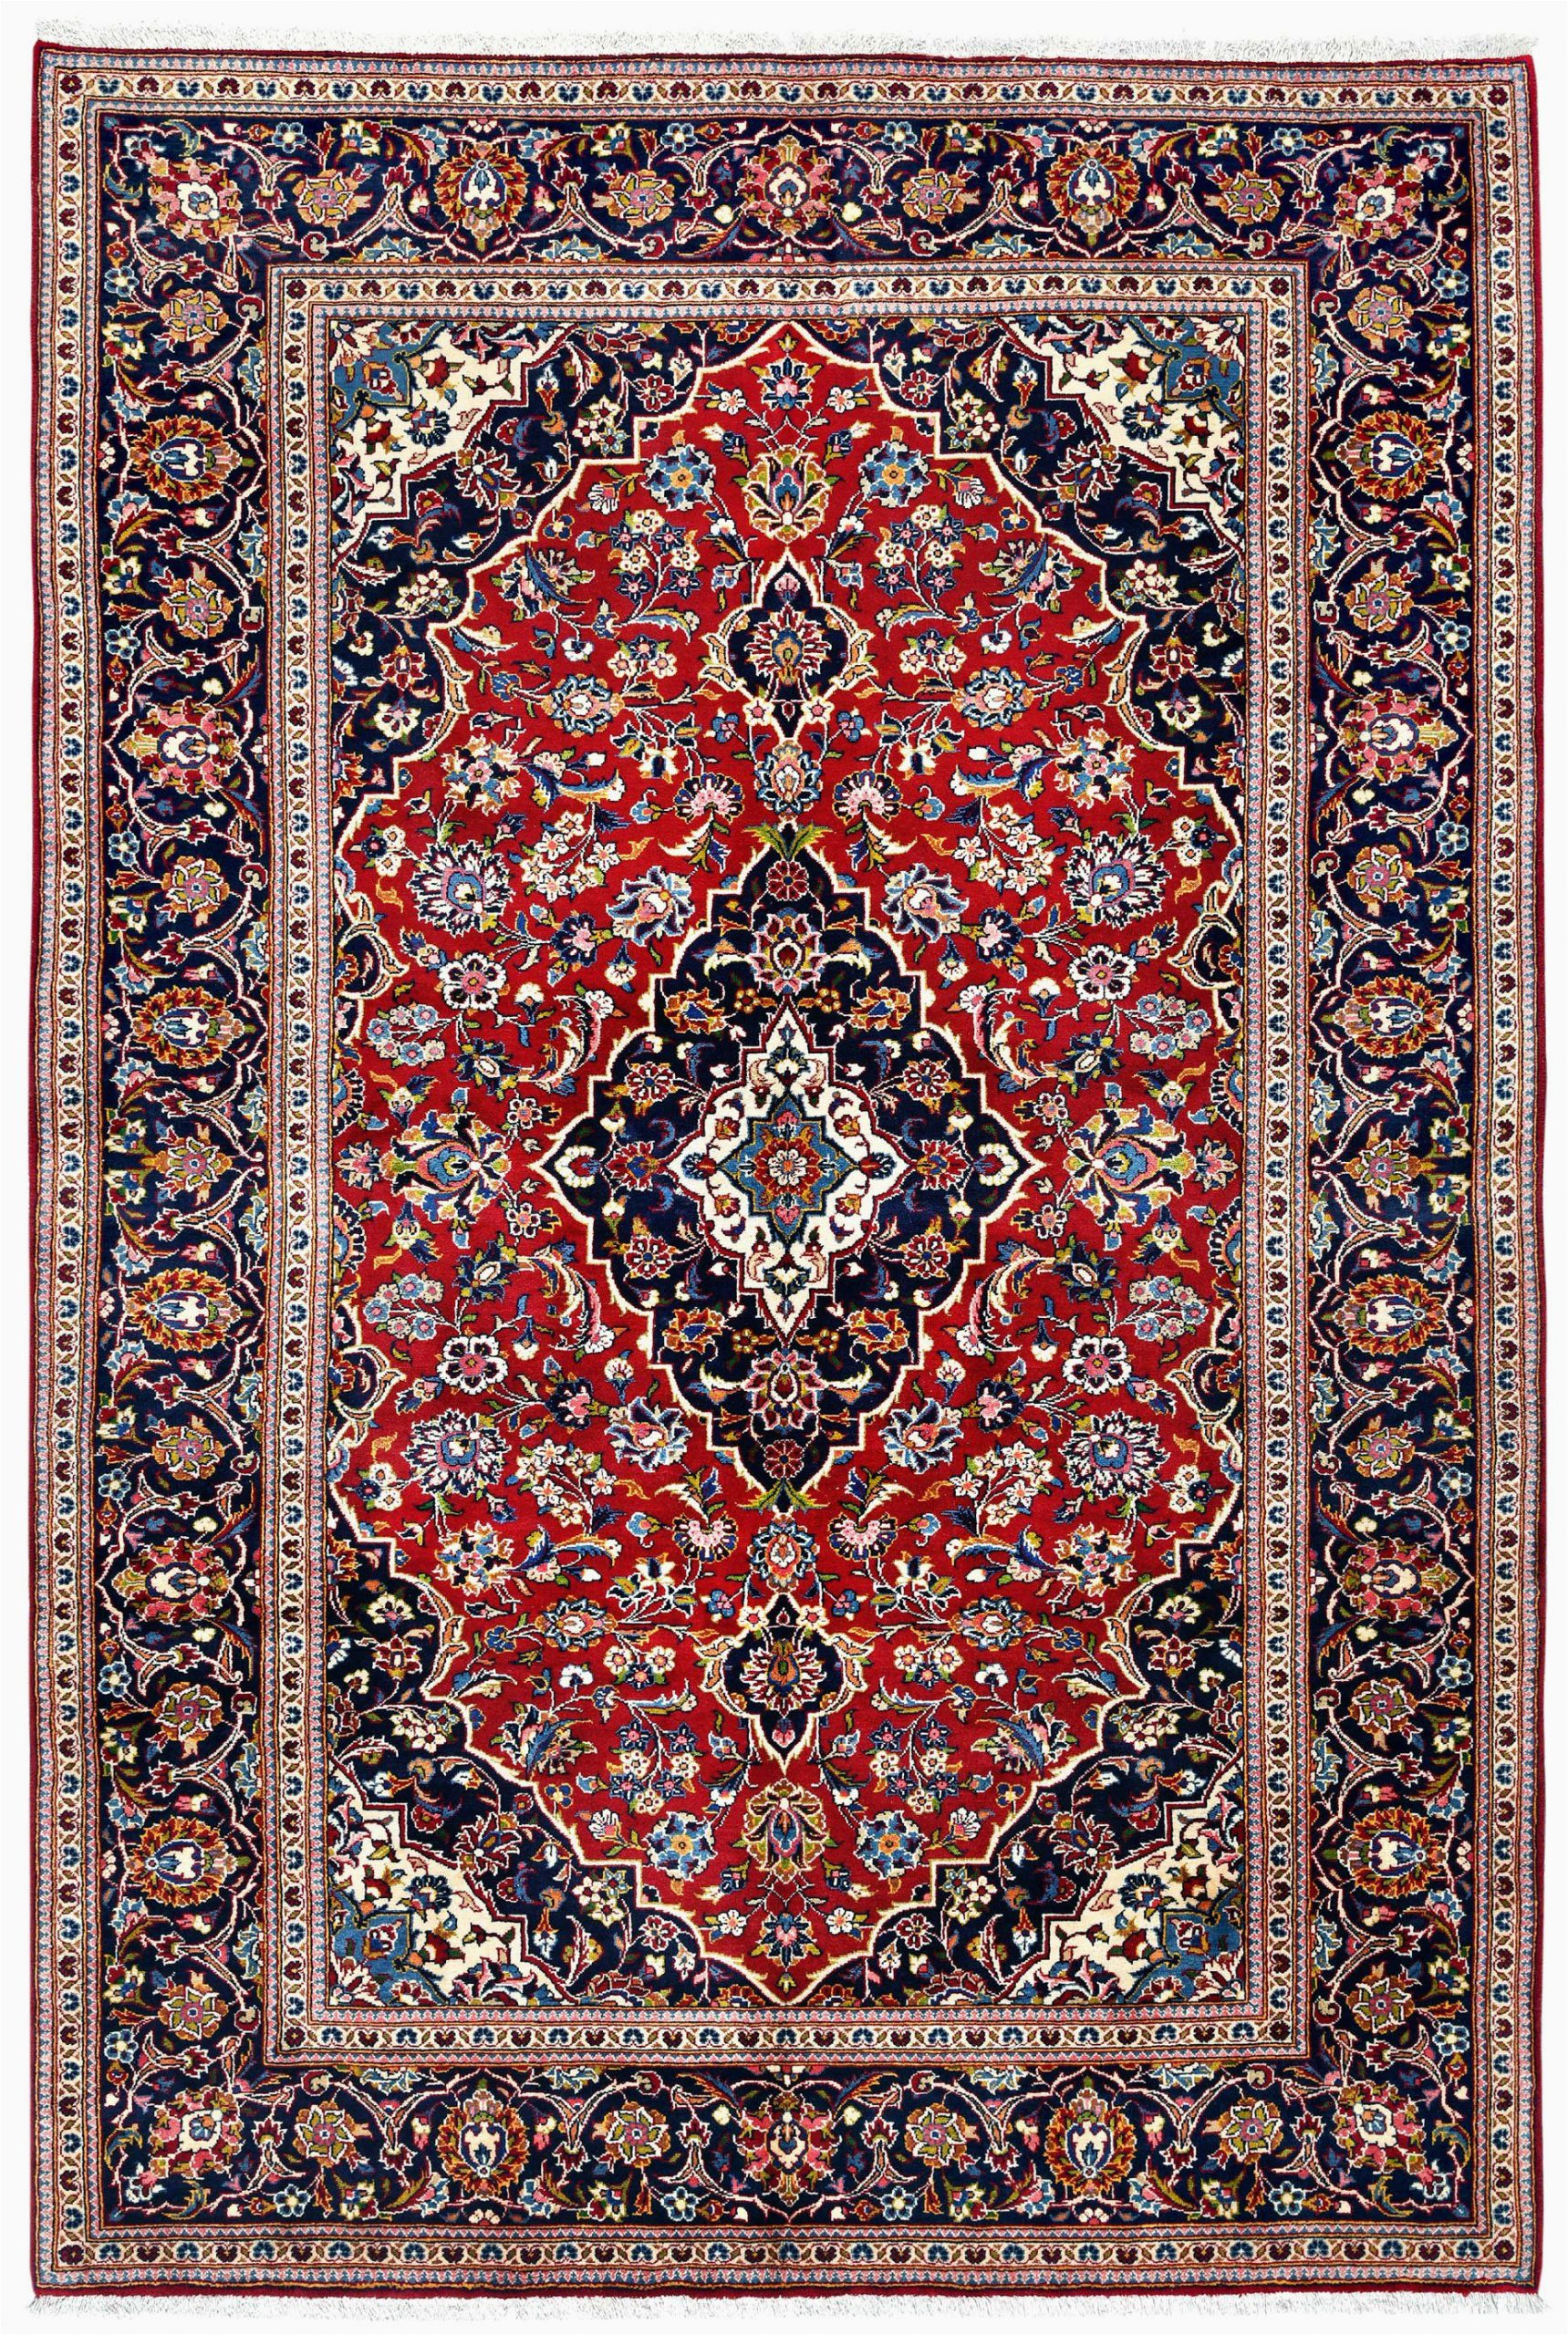 Blue Persian Rugs for Sale Red Kashan Rug Persian Carpet for Sale 2x3m Dr414